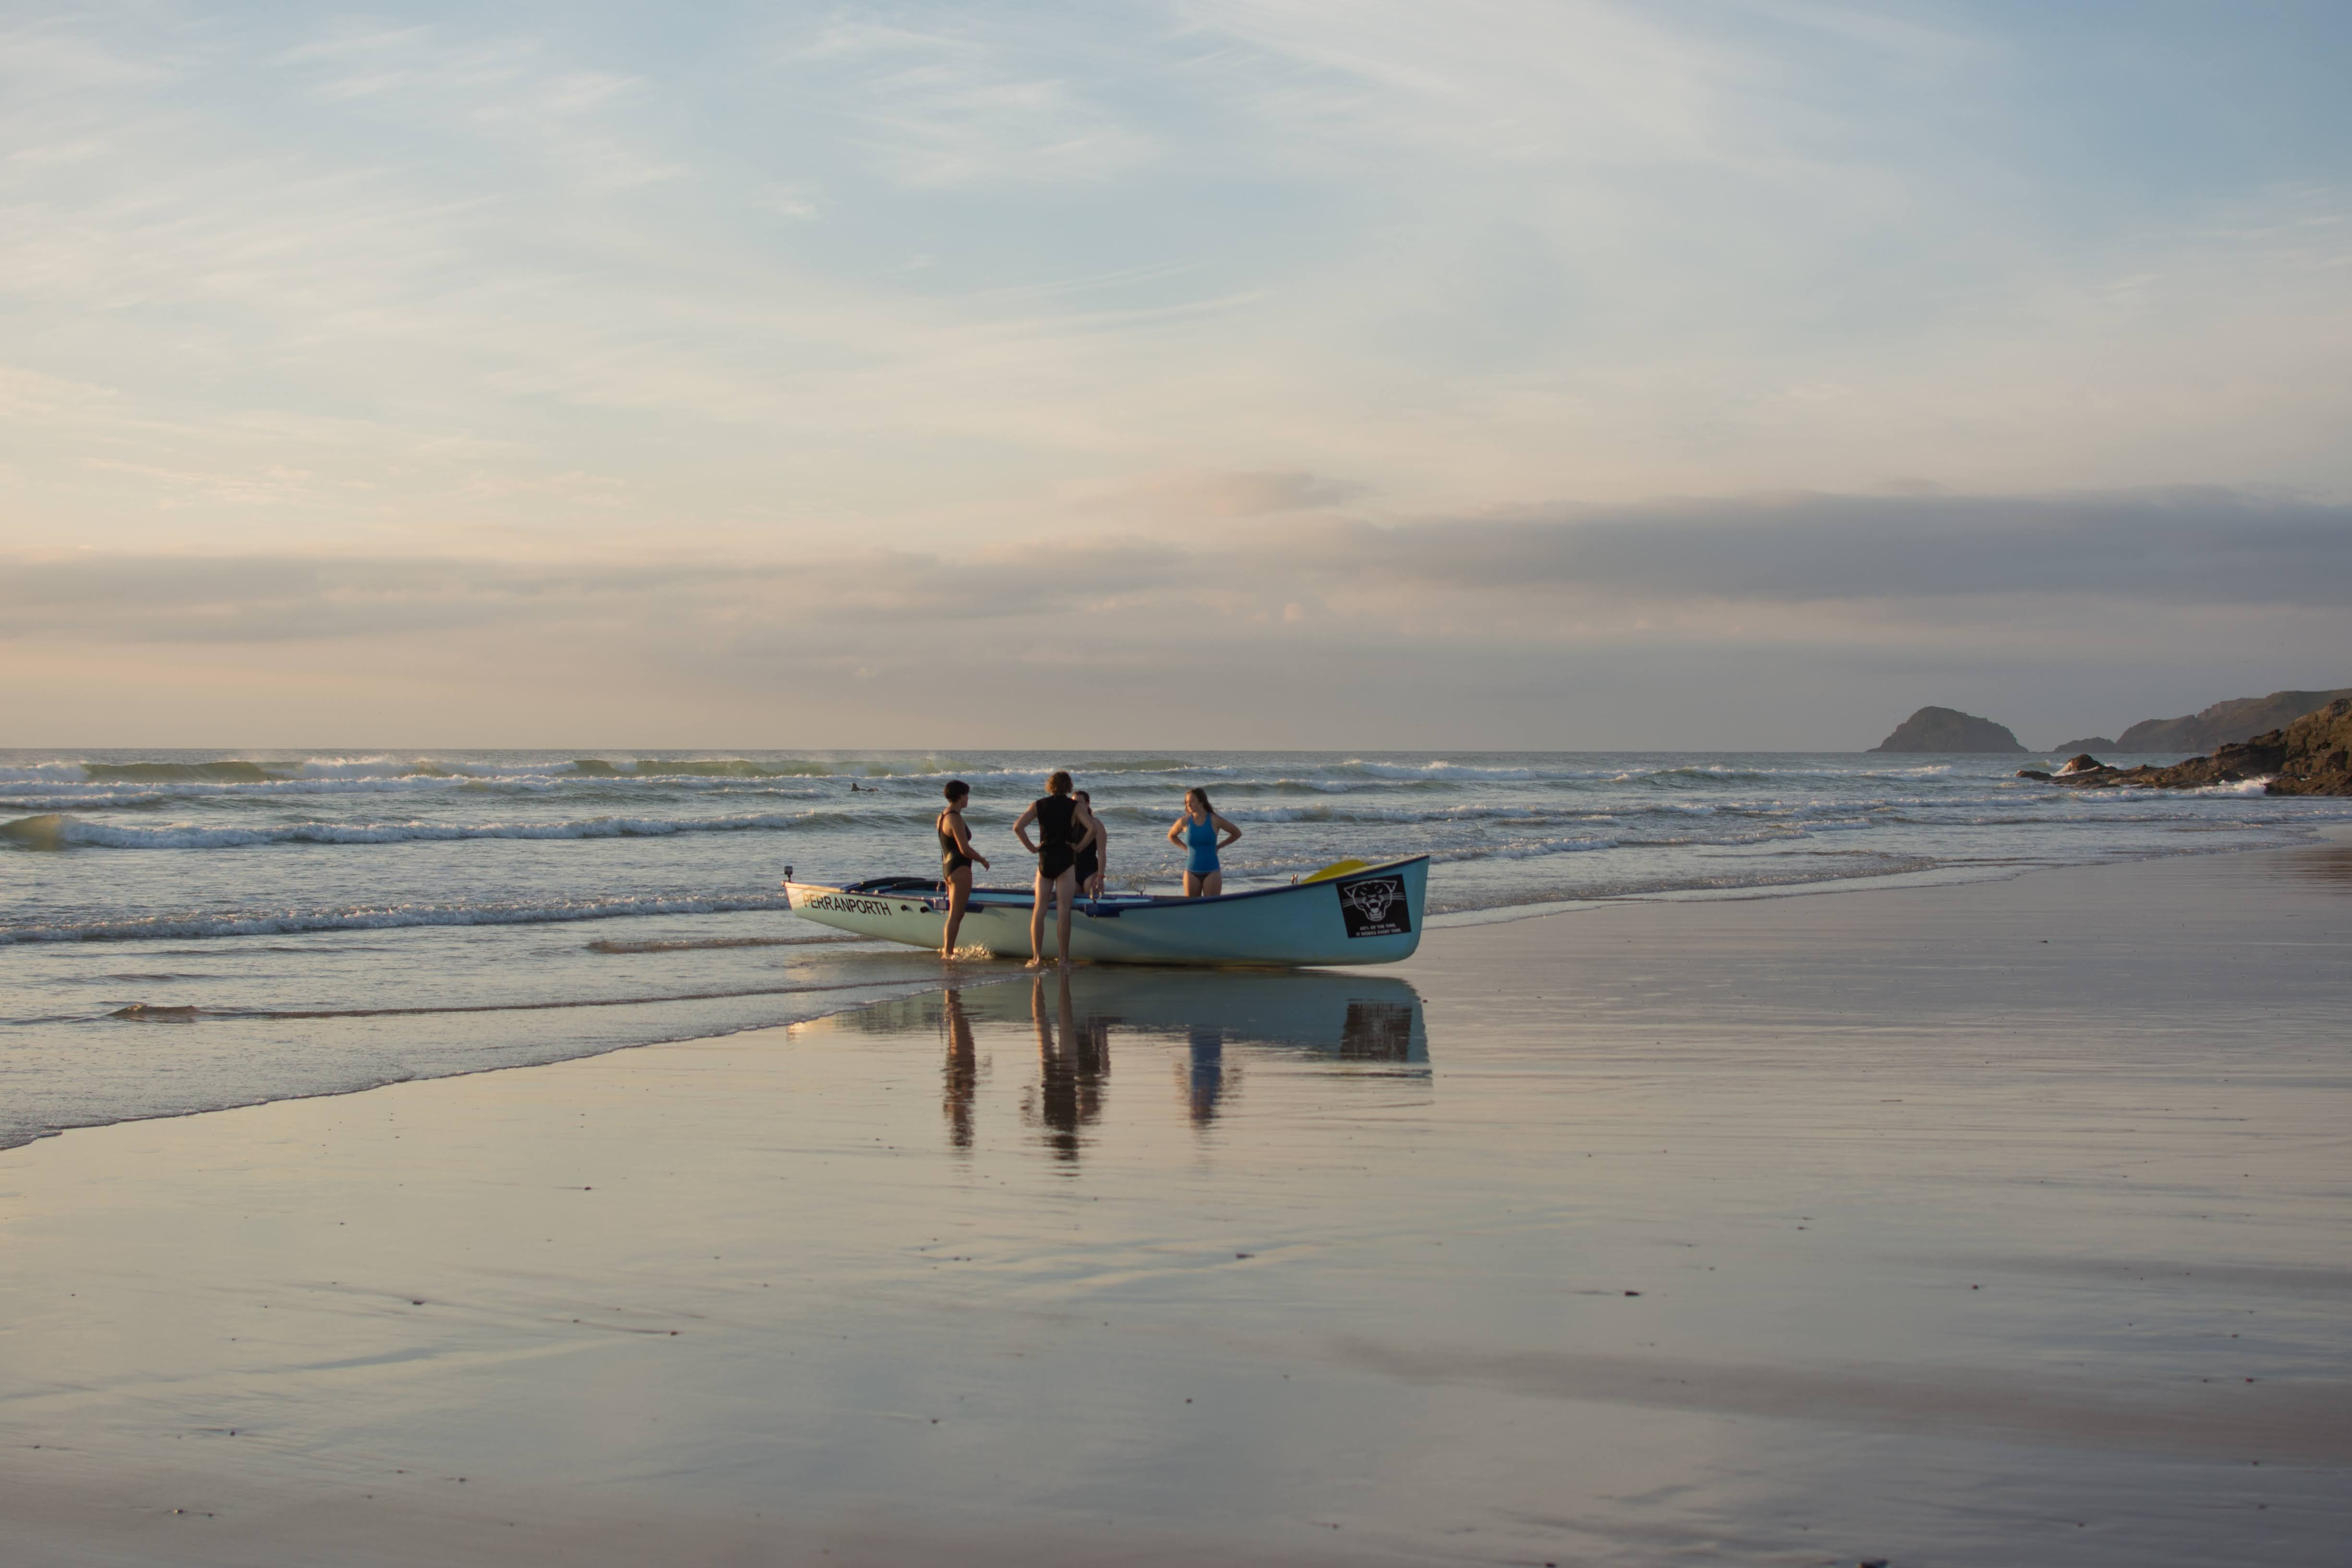 Rowing boat on a beach in Cornwall